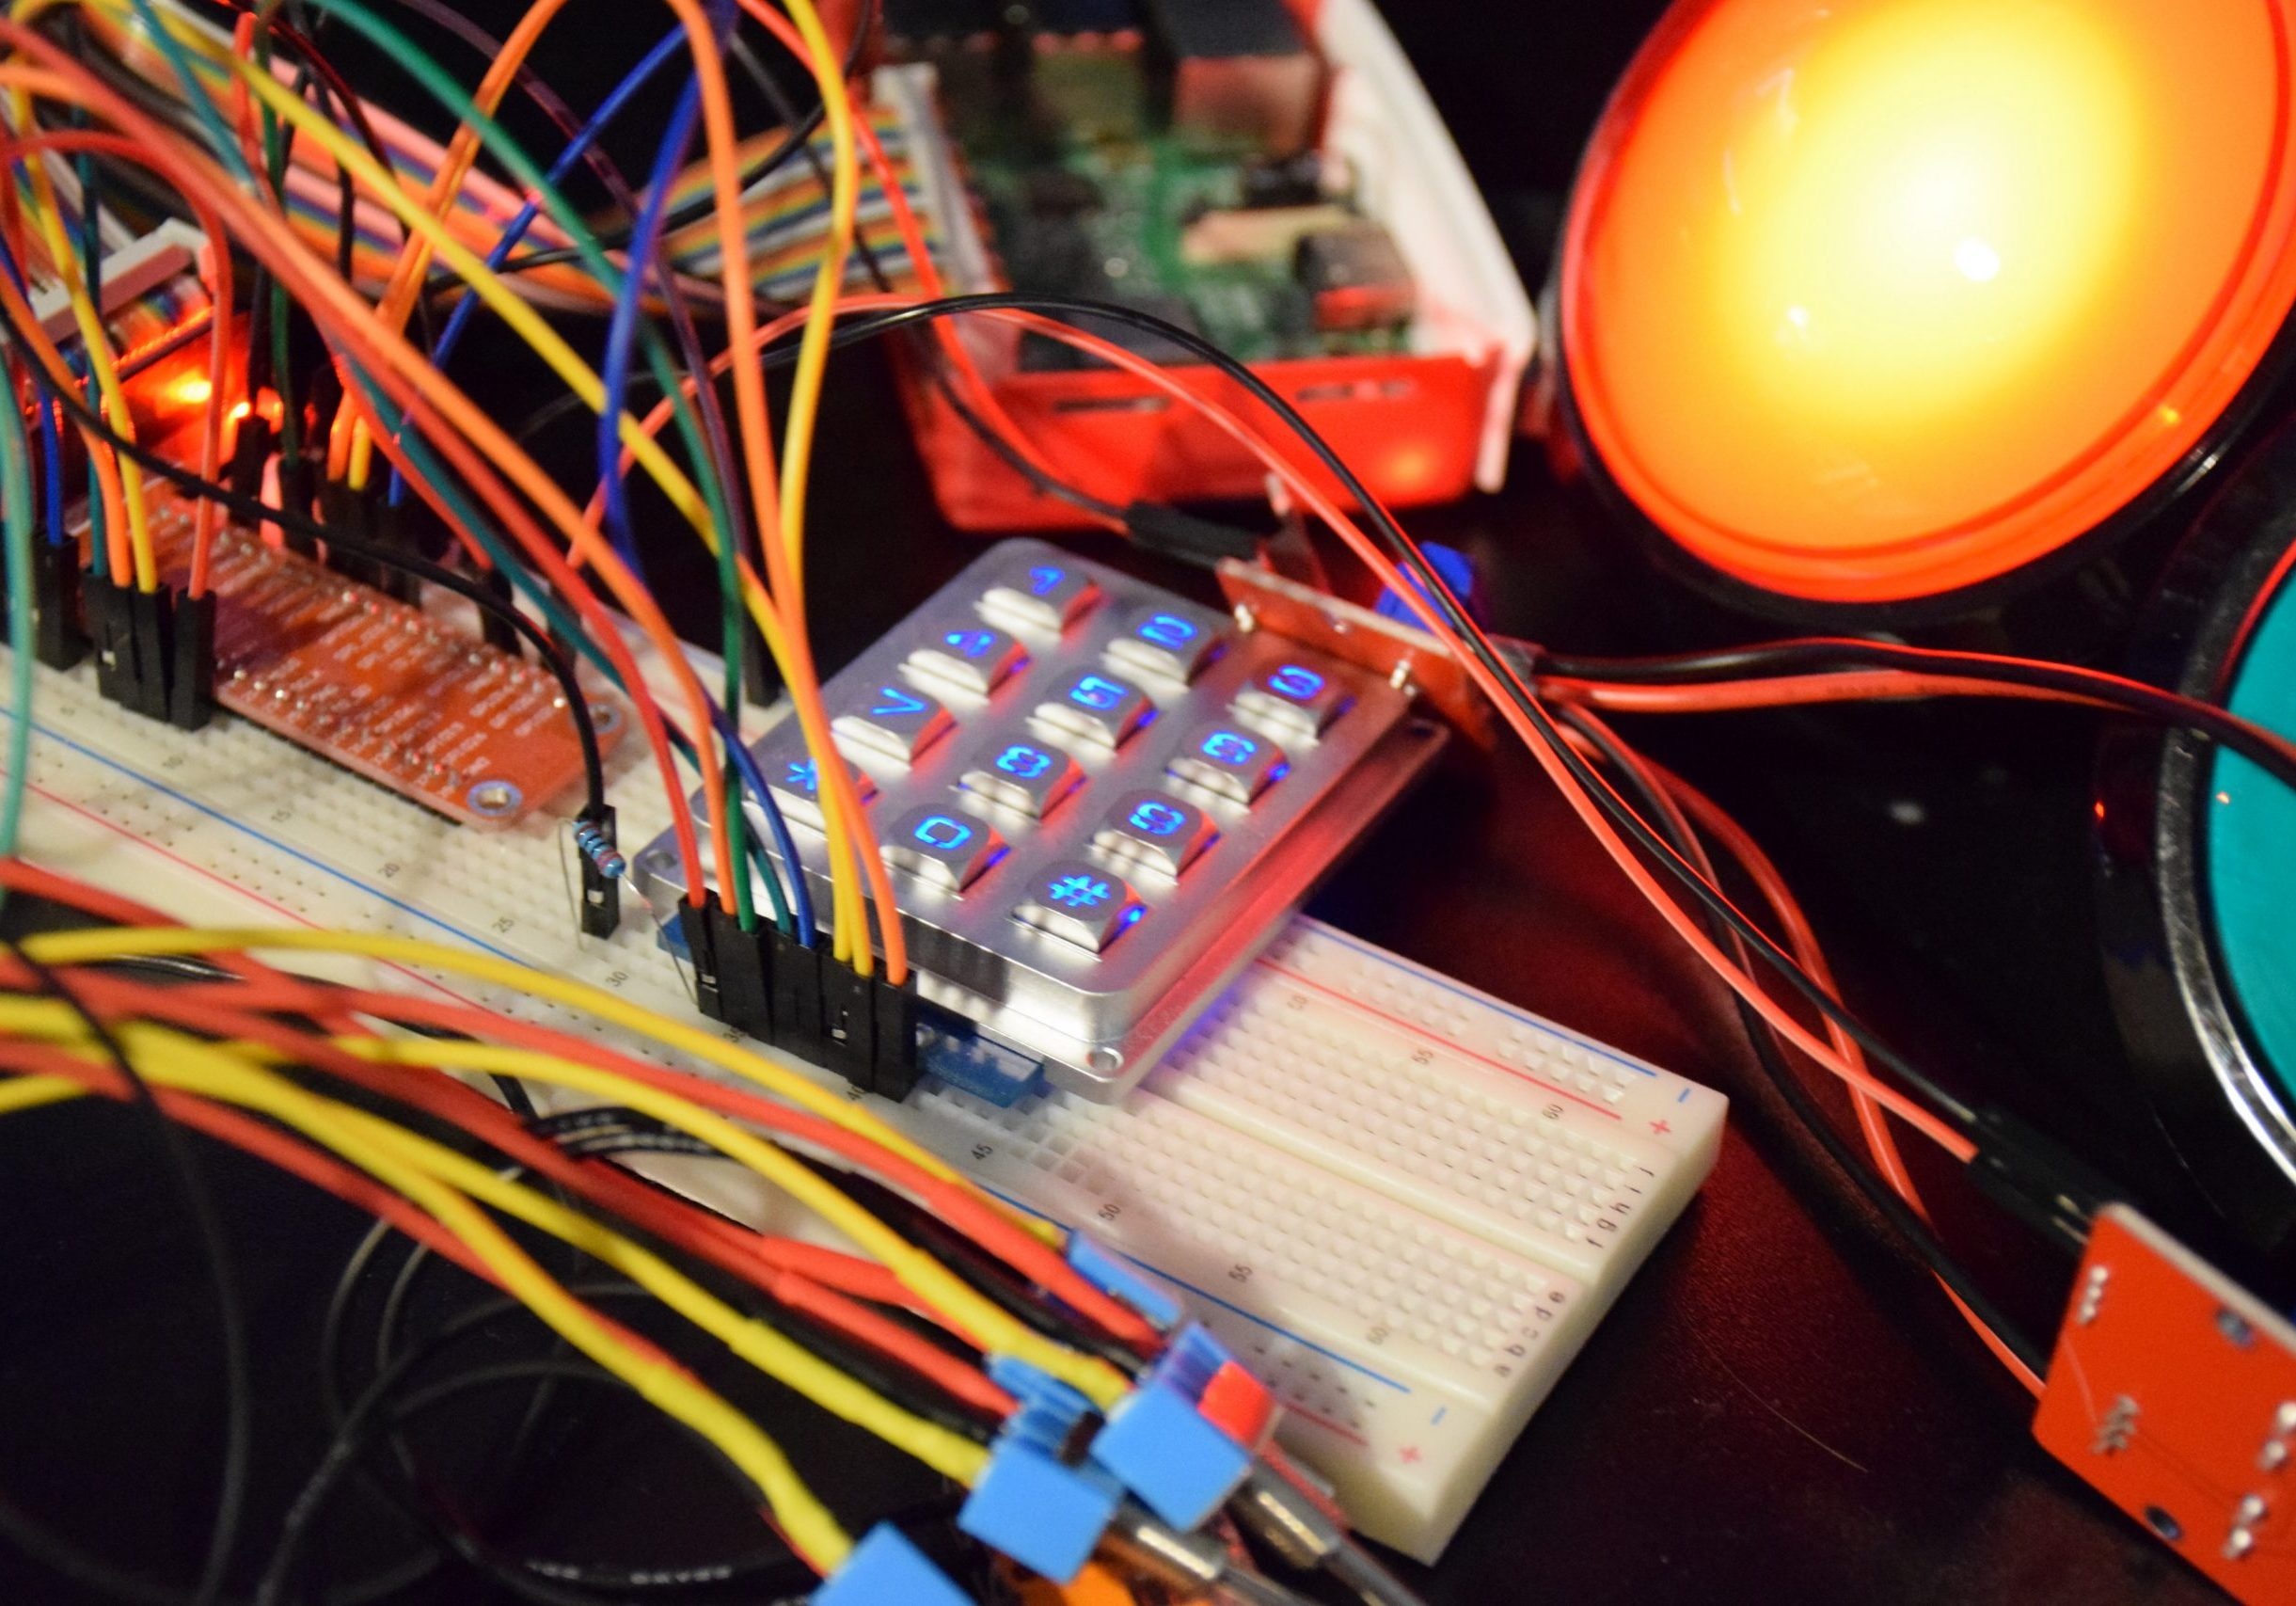 Photograph of Raspberry Pi project development with various components all connected together, such as keypad, LED lights and toggle switches